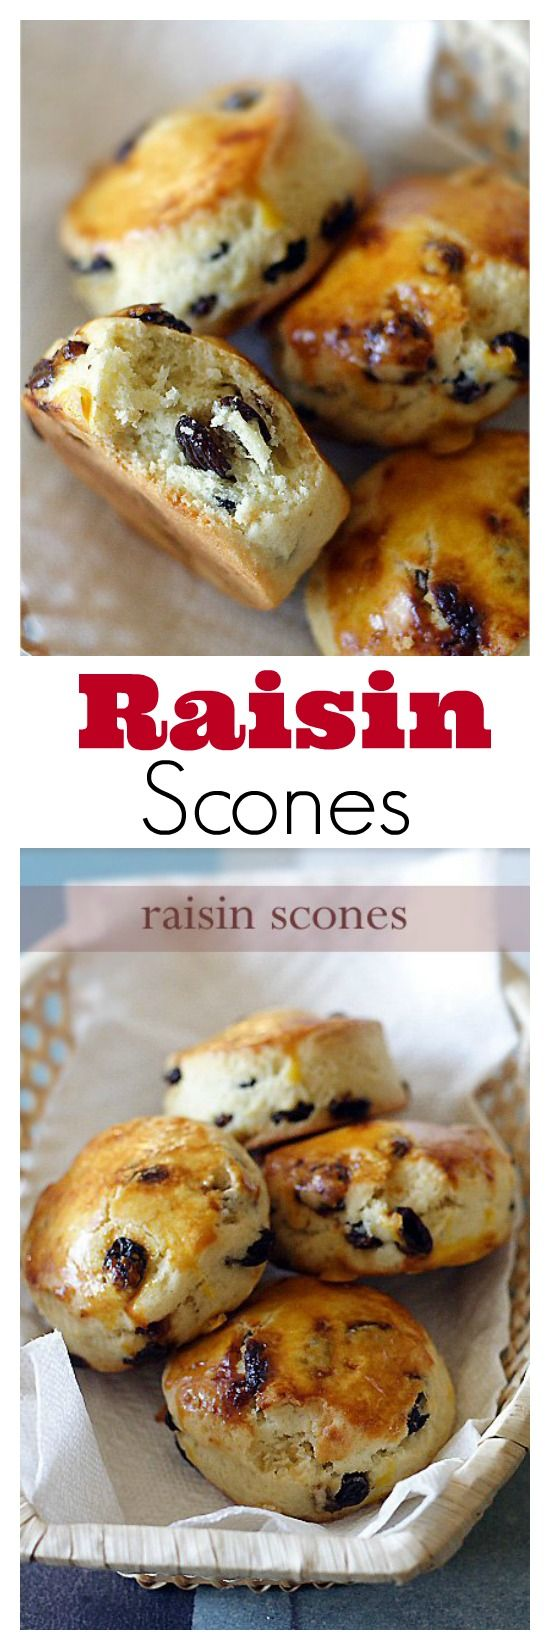 Raisin scones - crumbly, flaky, buttery, and the best raisin scones ...